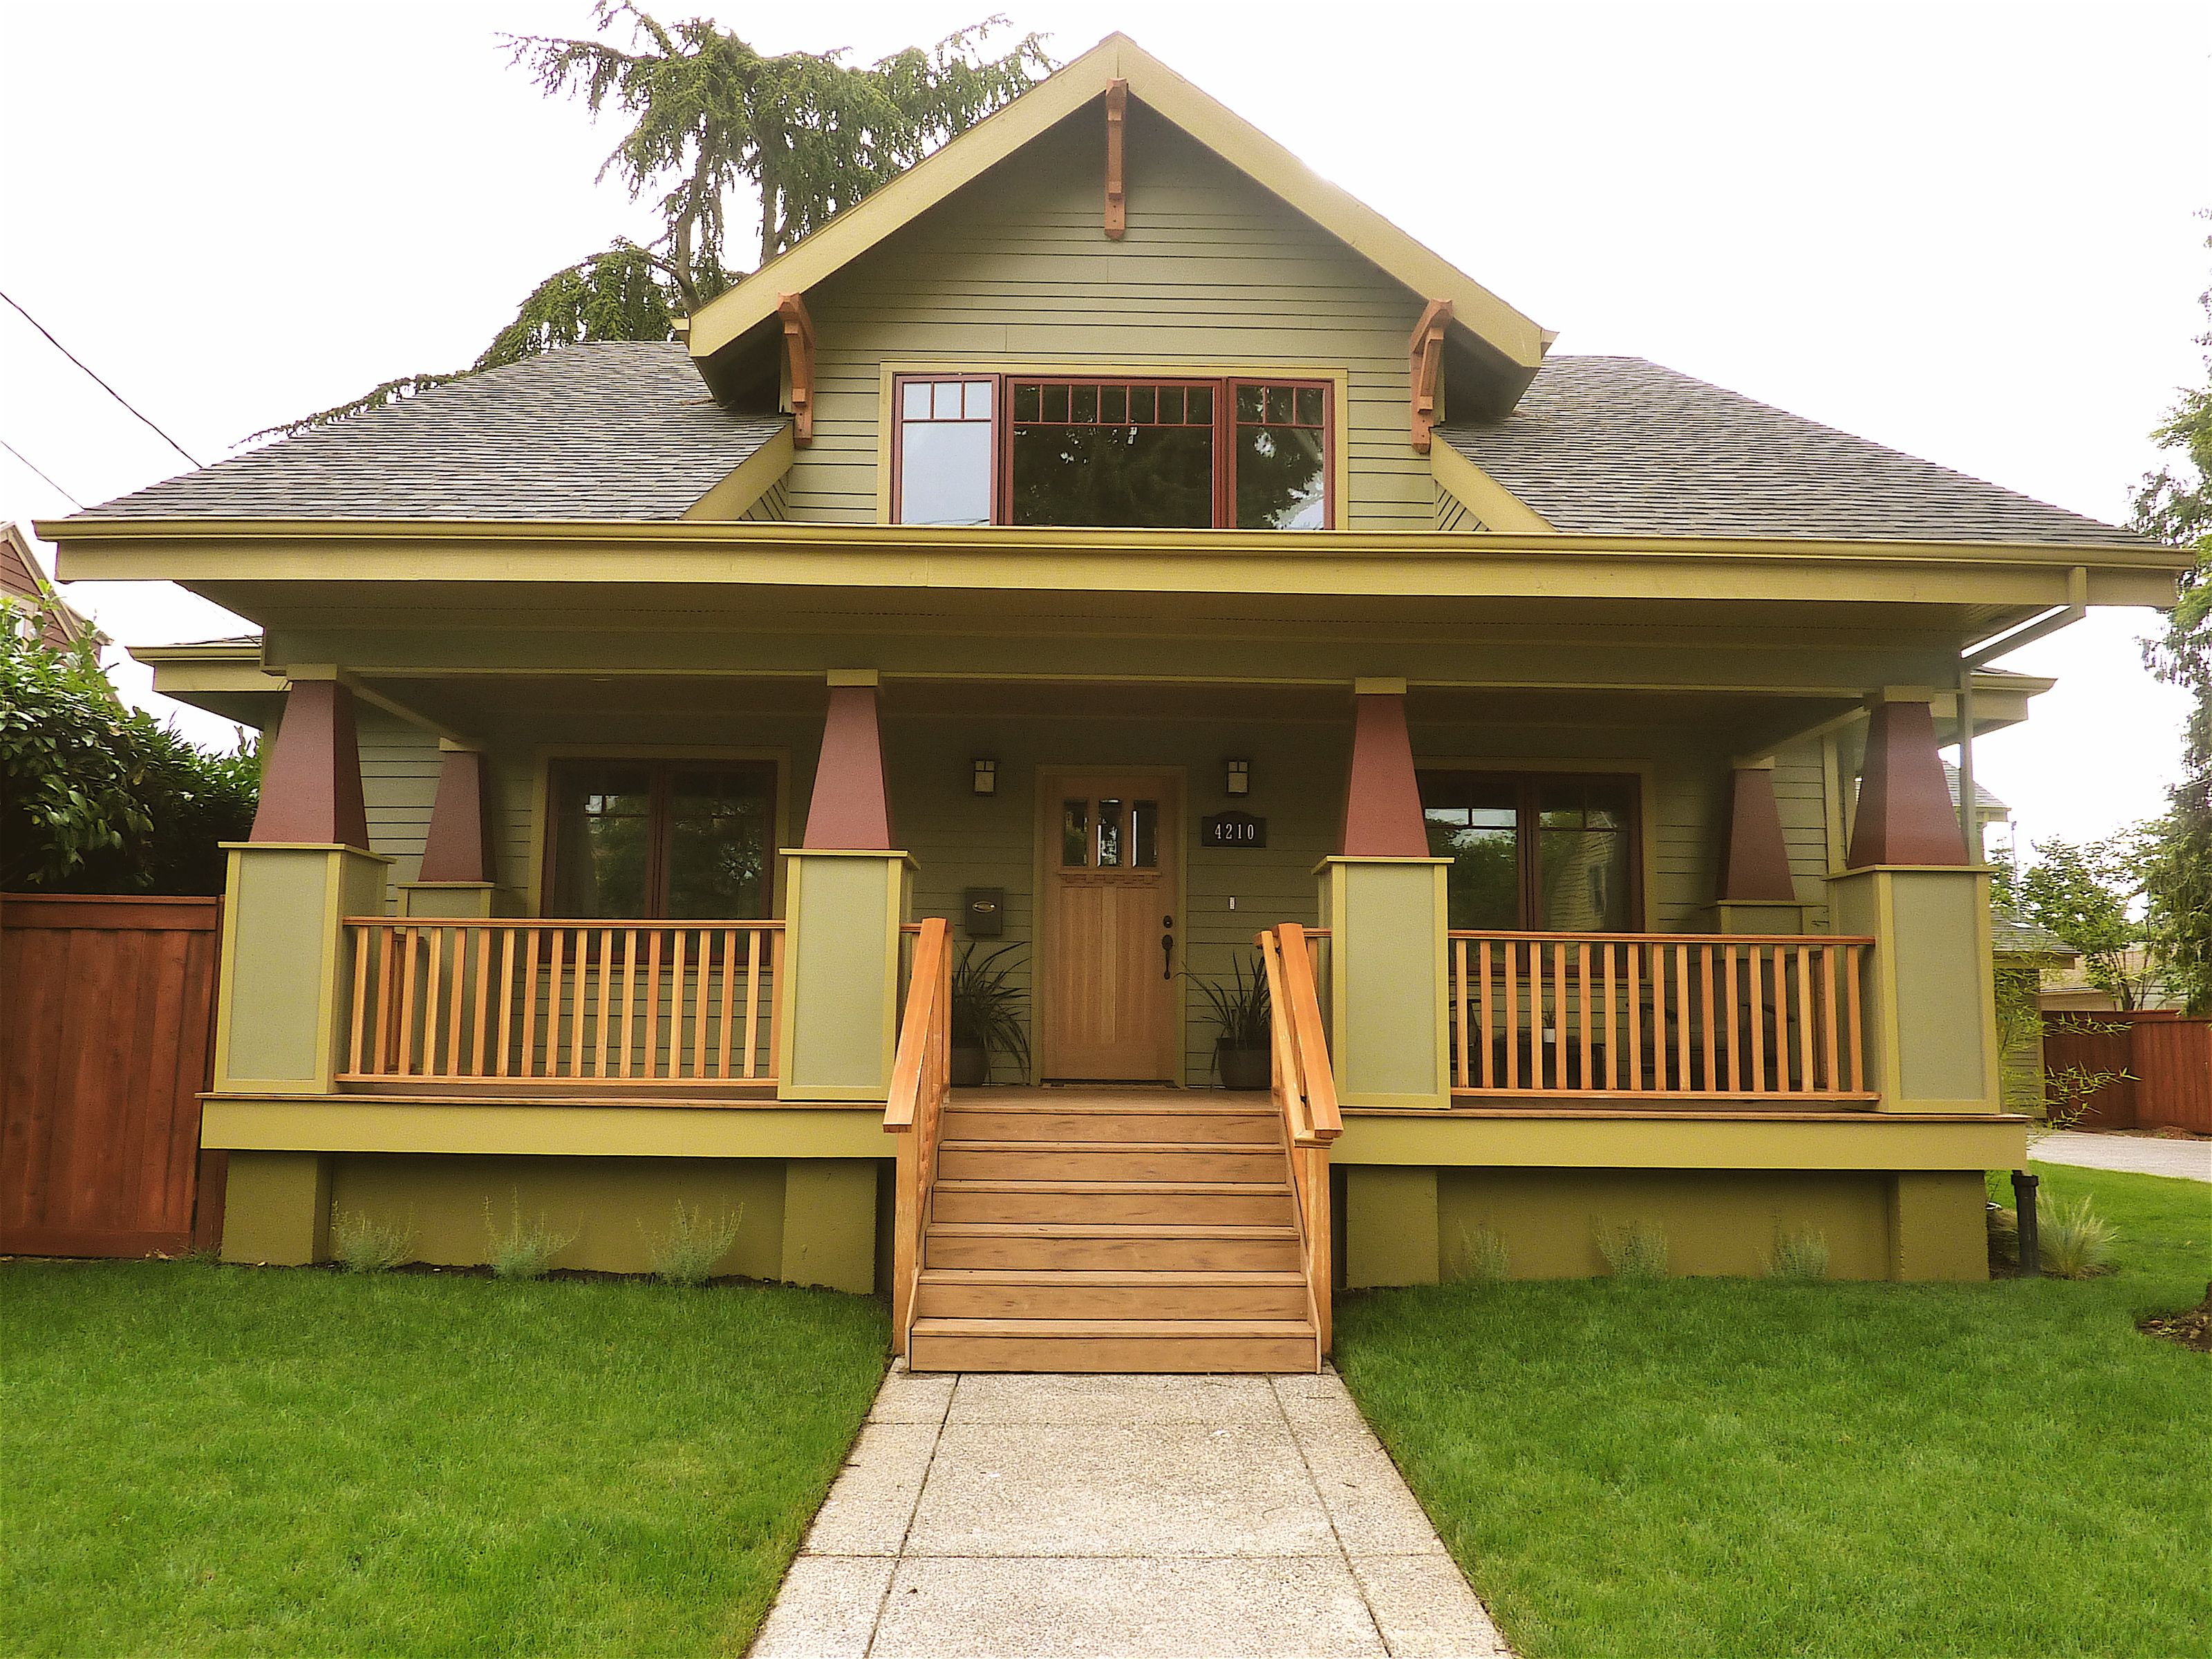 Green And Burgundy Wood Detailed Craftsman Bungalow